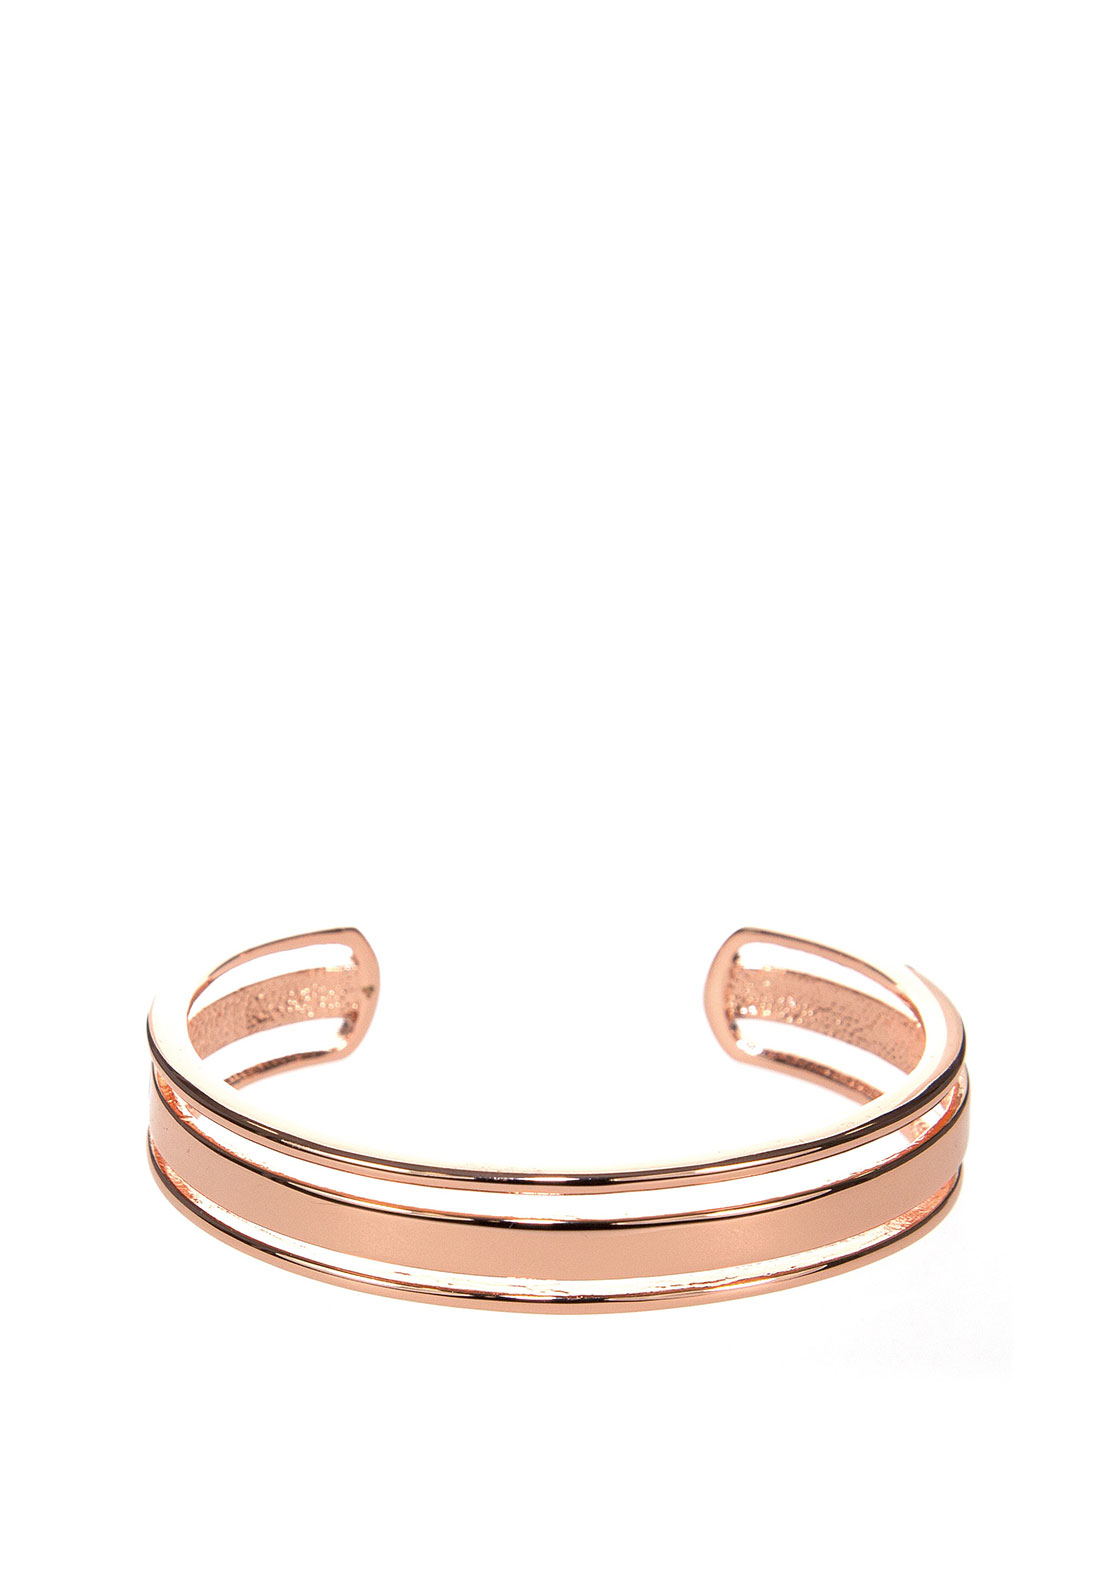 Absolute Sliced Open Cuff Bangle, Rose Gold